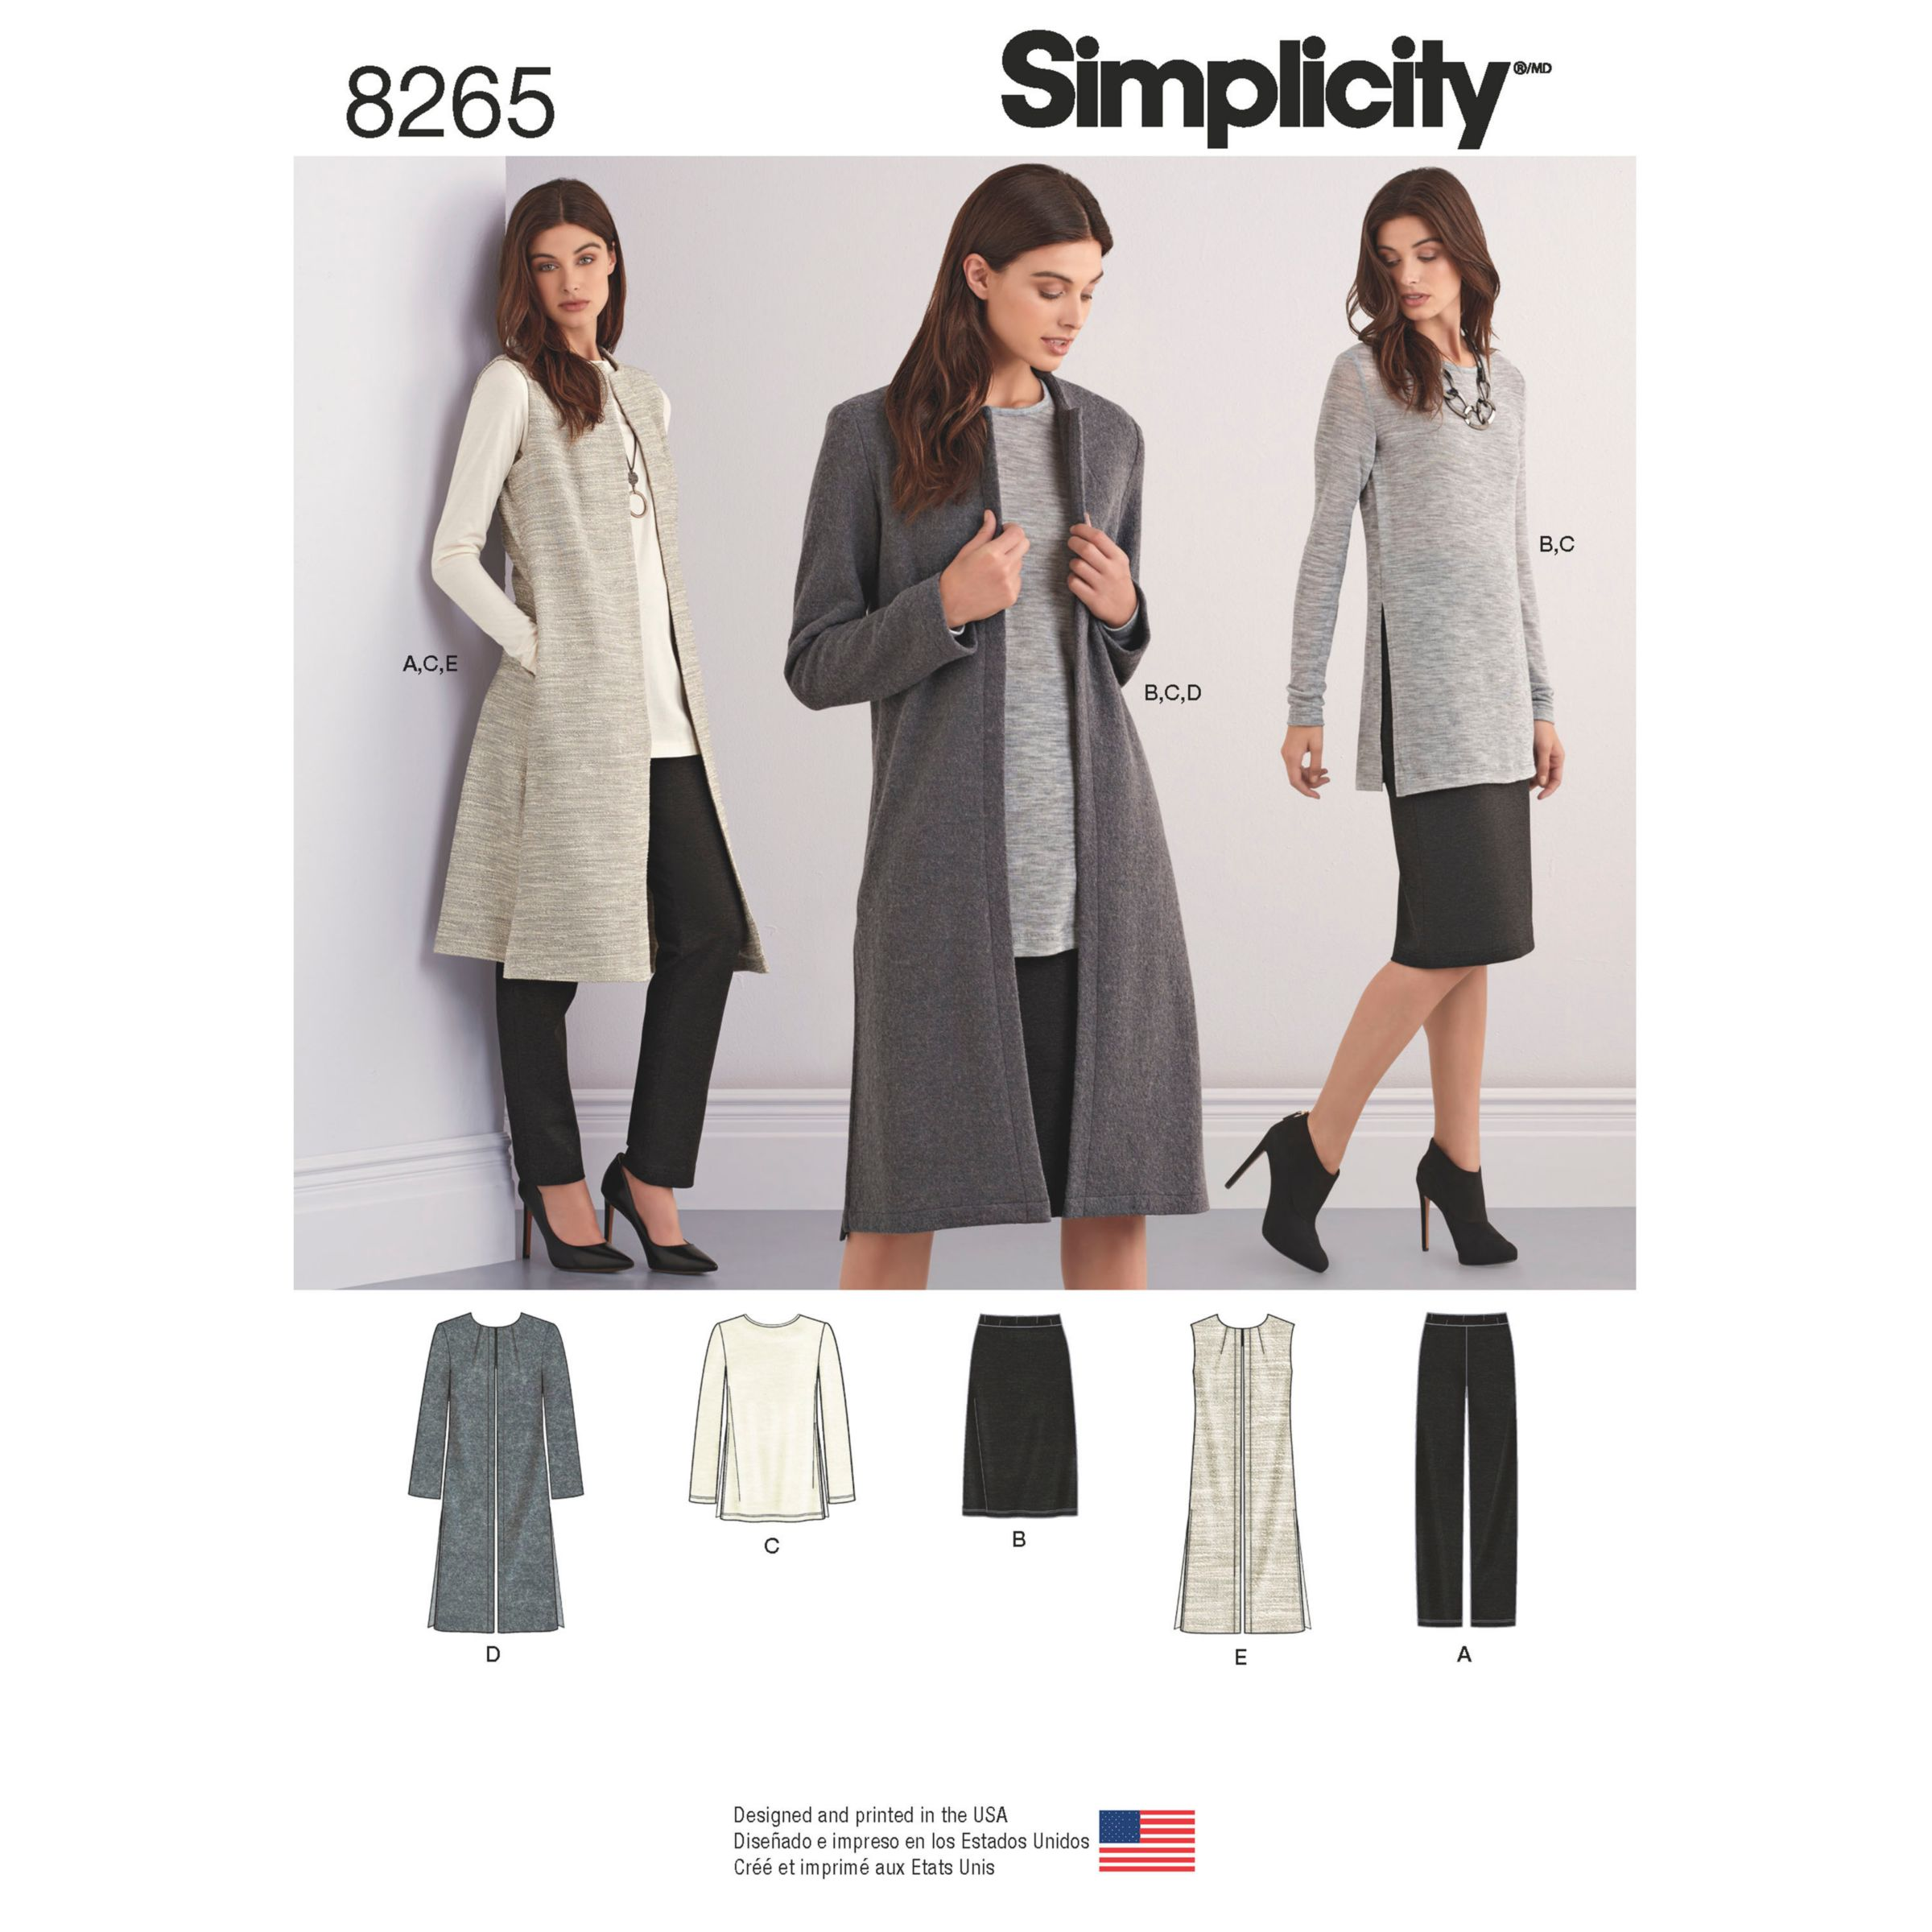 Simplicity Simplicity Misses' and Miss Petite Separates Sewing Pattern, 8265